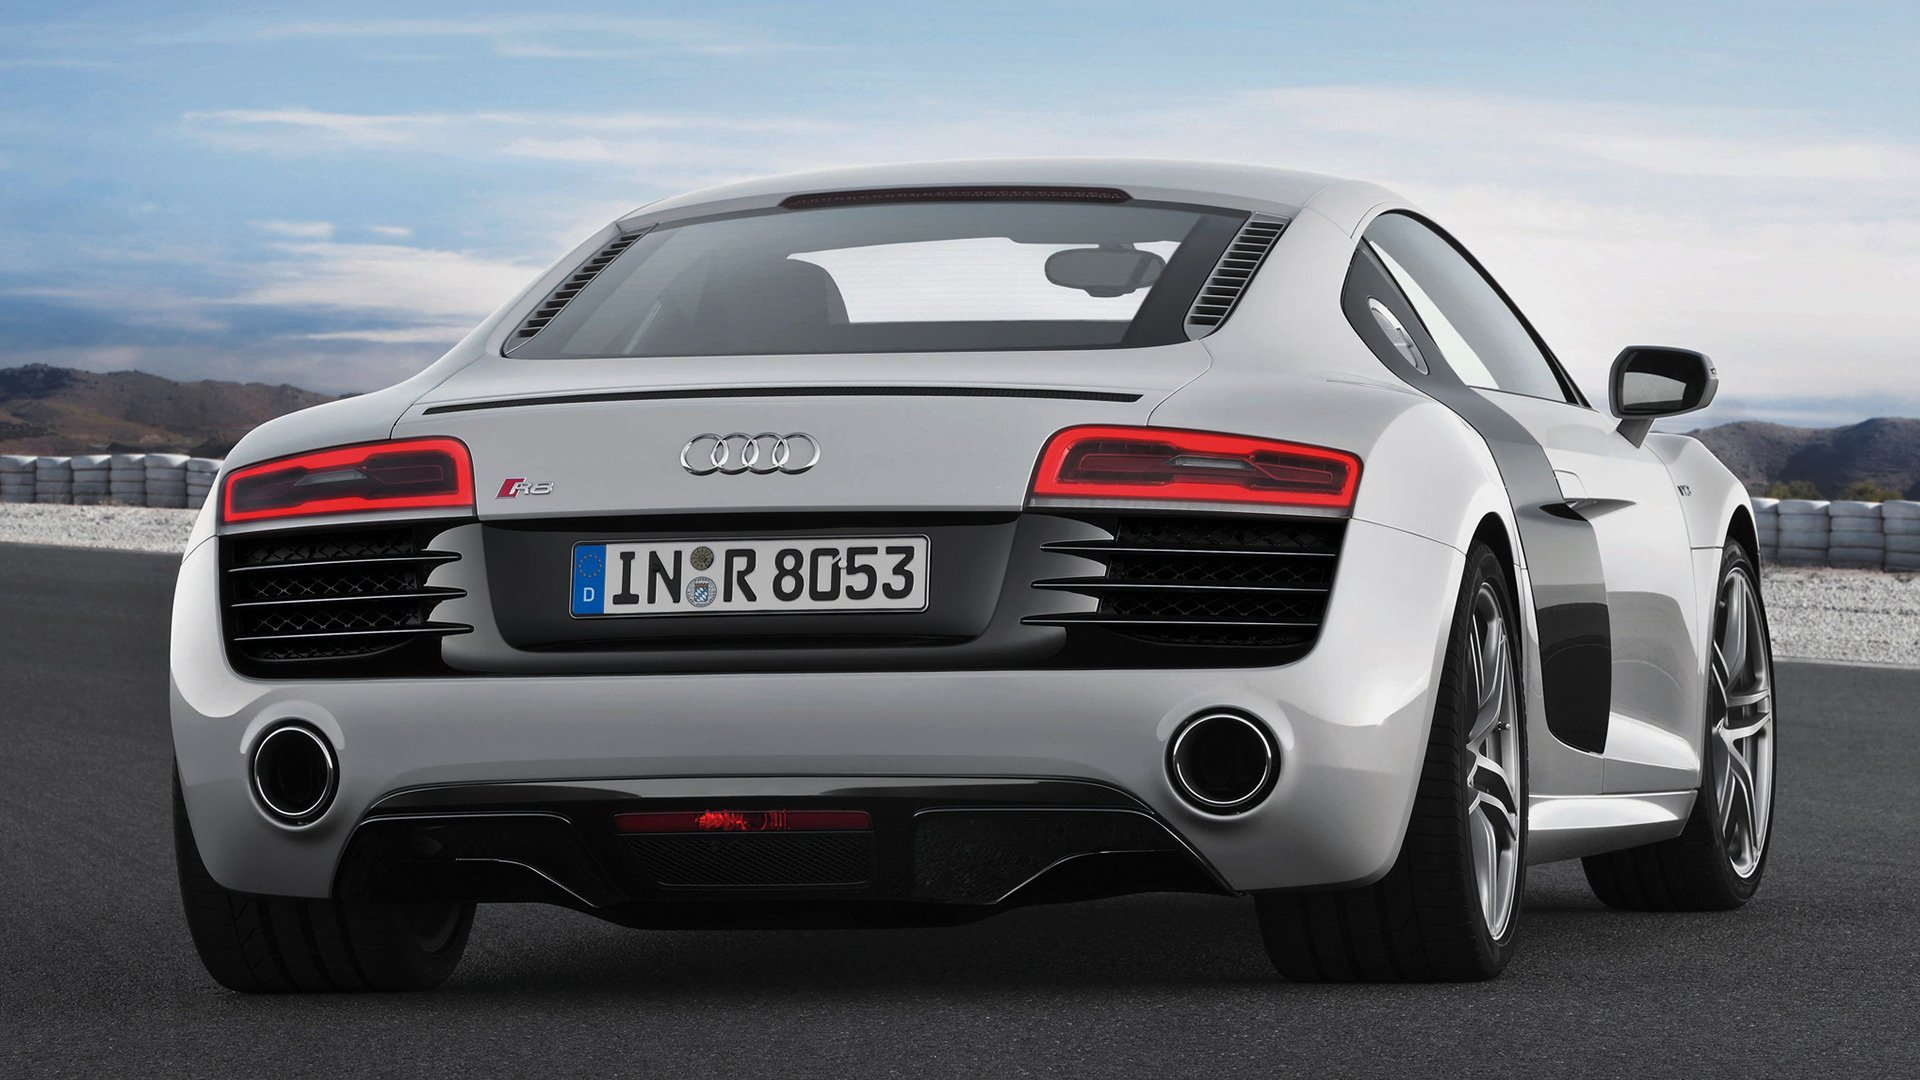 2012 Audi R8 V10 Coupe Hd Wallpaper Background Image 1920x1080 Id 1111750 Wallpaper Abyss